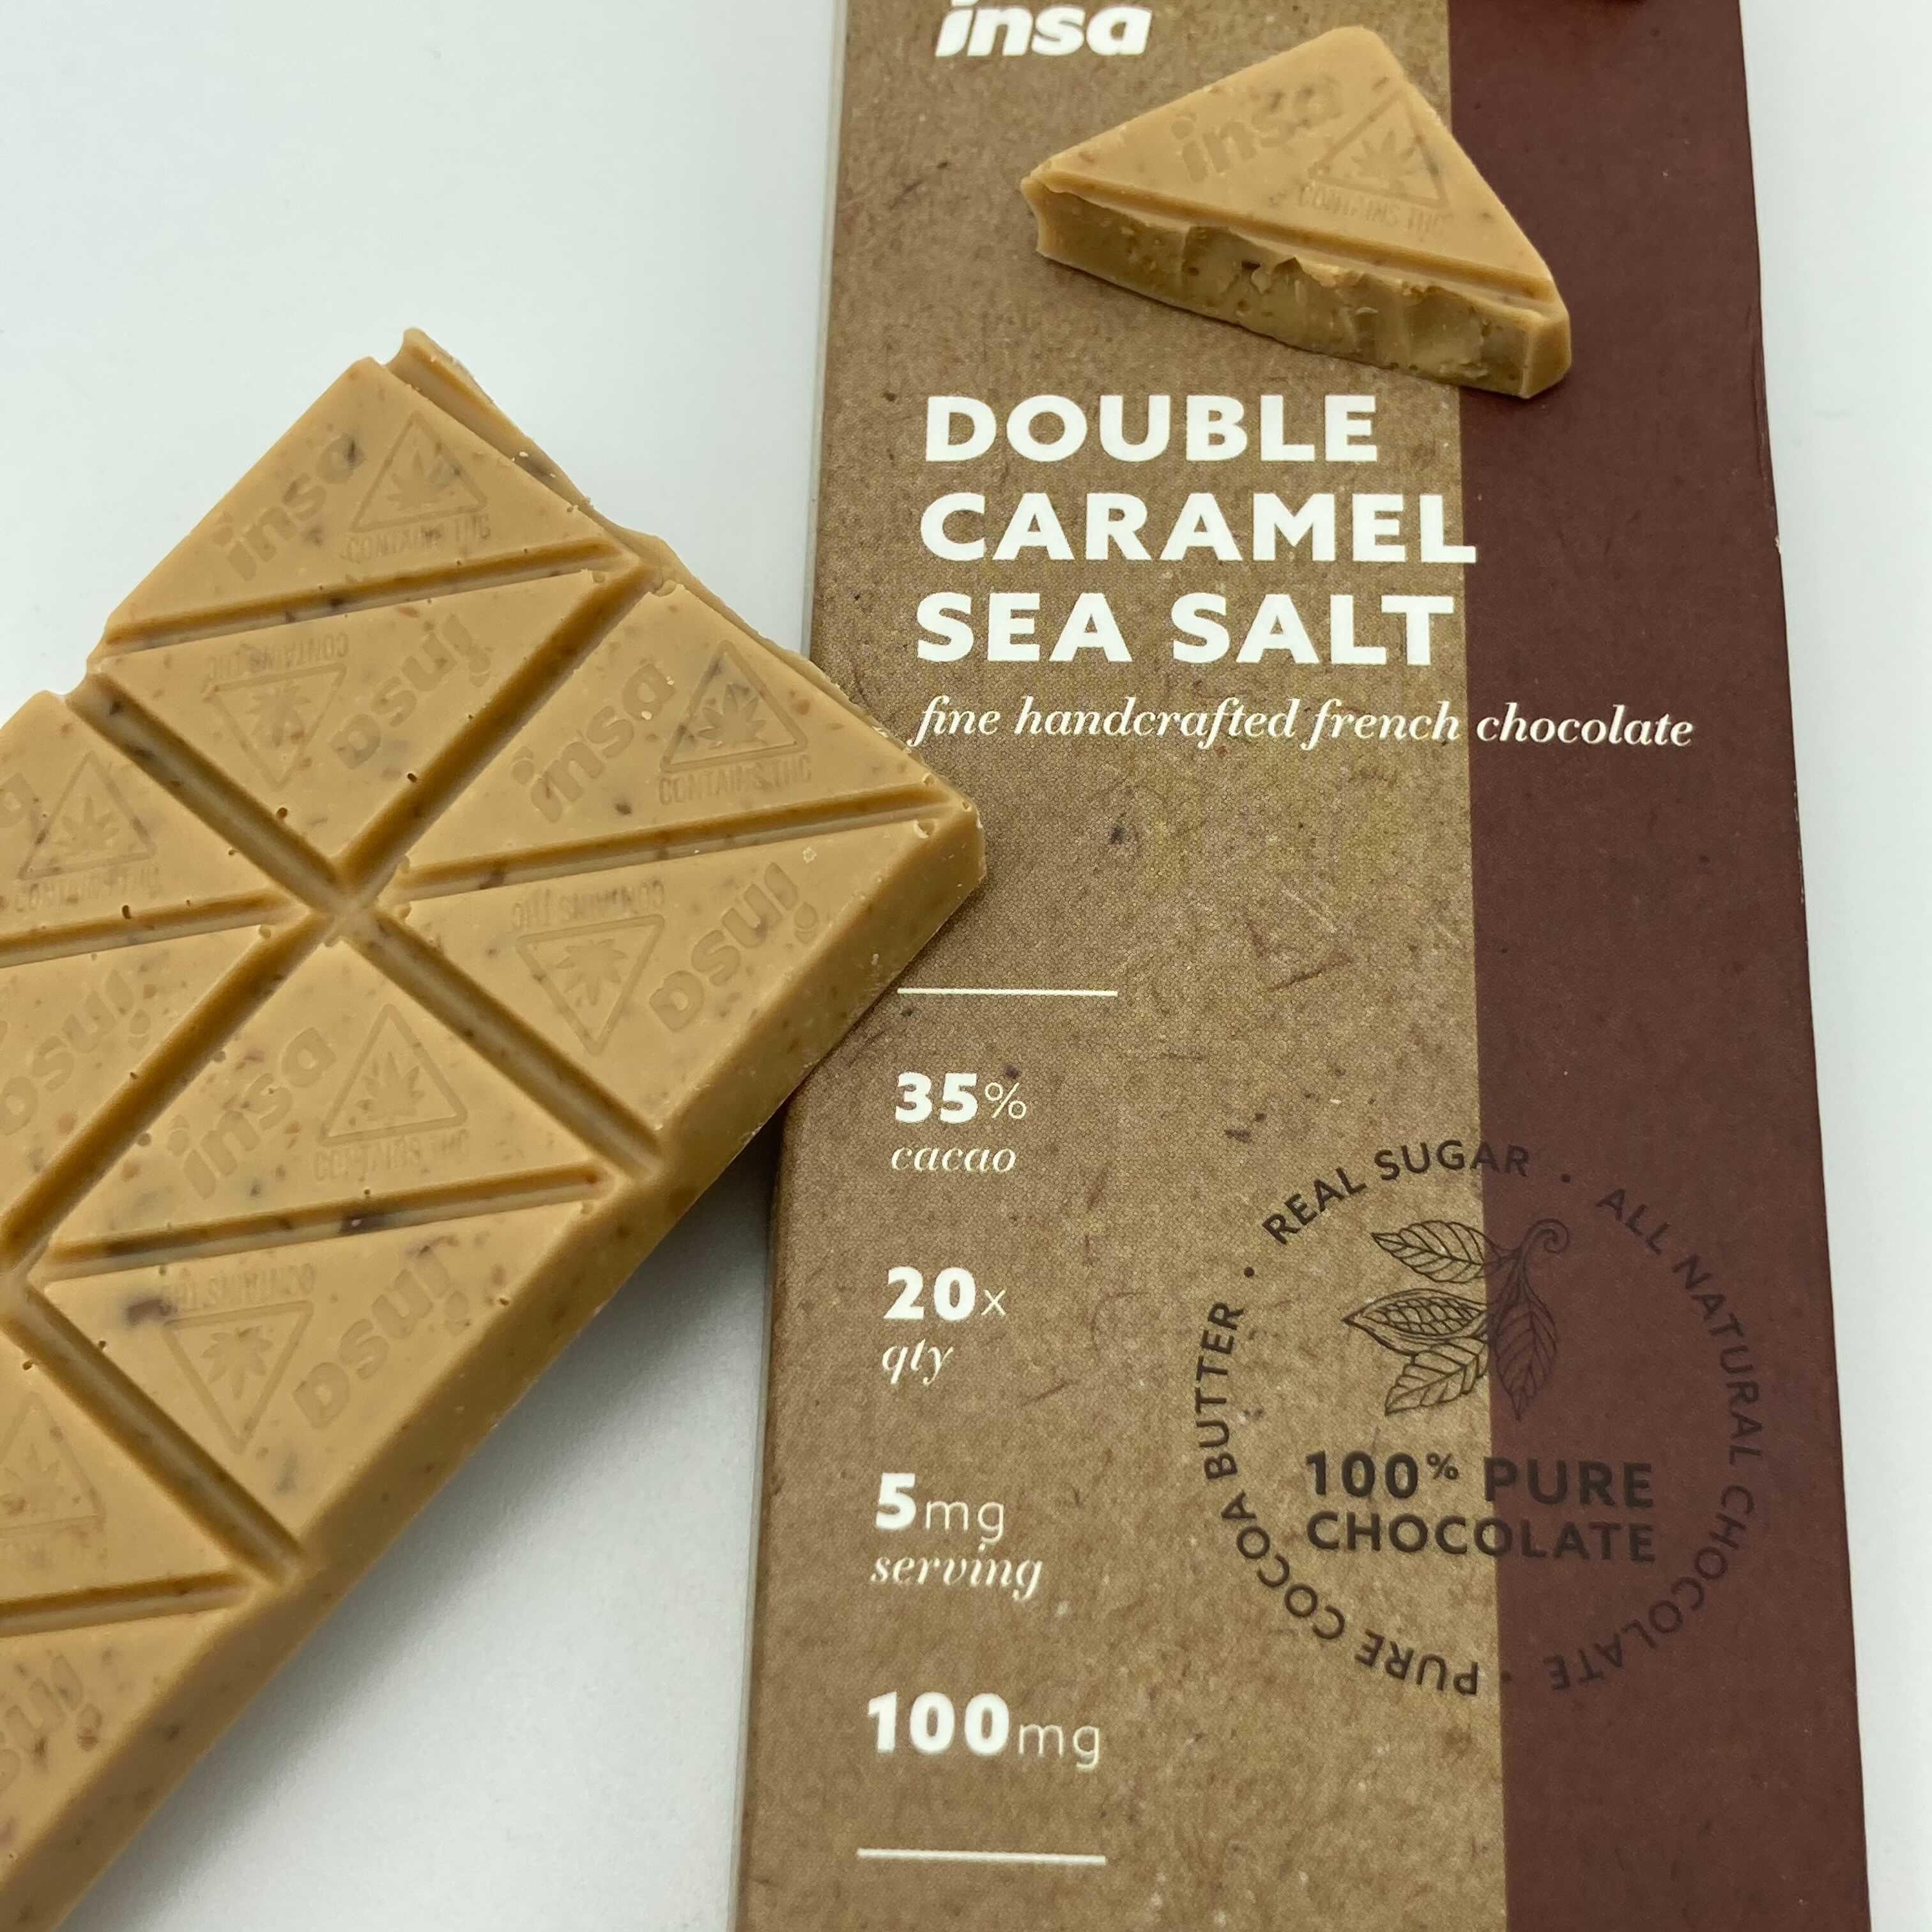 MA Strain Reviews - INSA Double Sea Salt Caramel Chocolate Bar